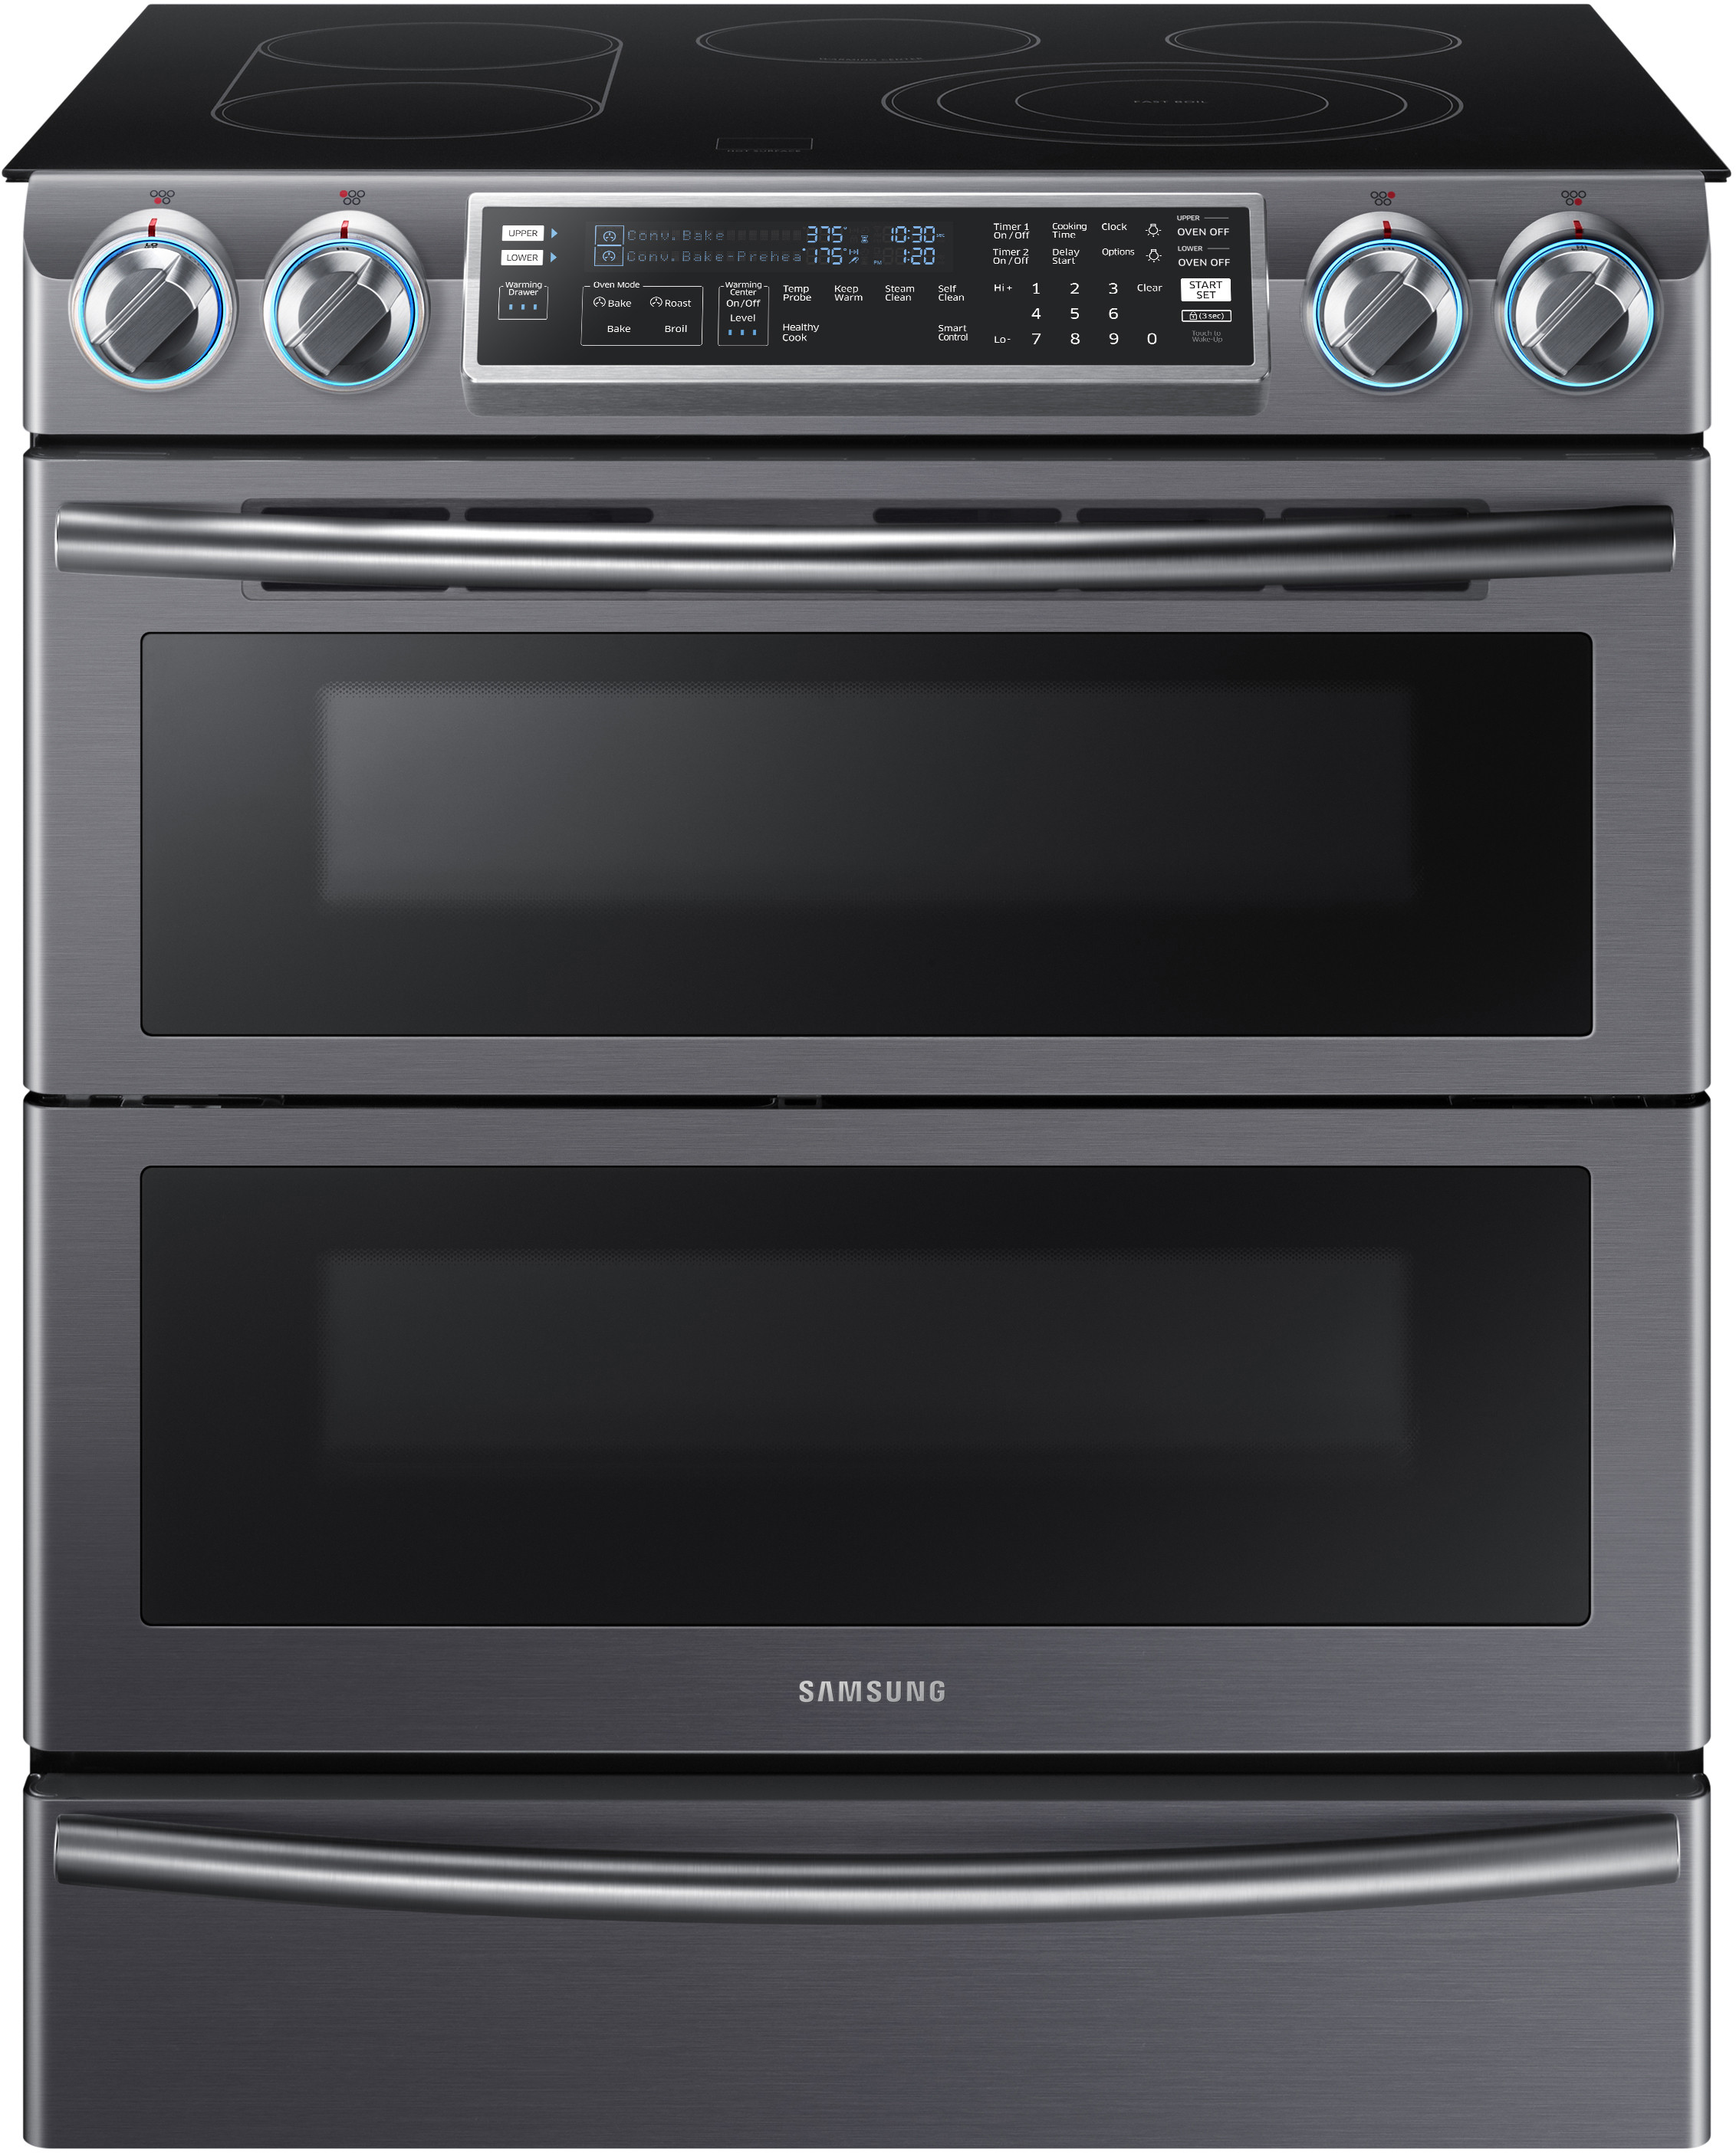 Electric Range With Microwave Drawer Bestmicrowave